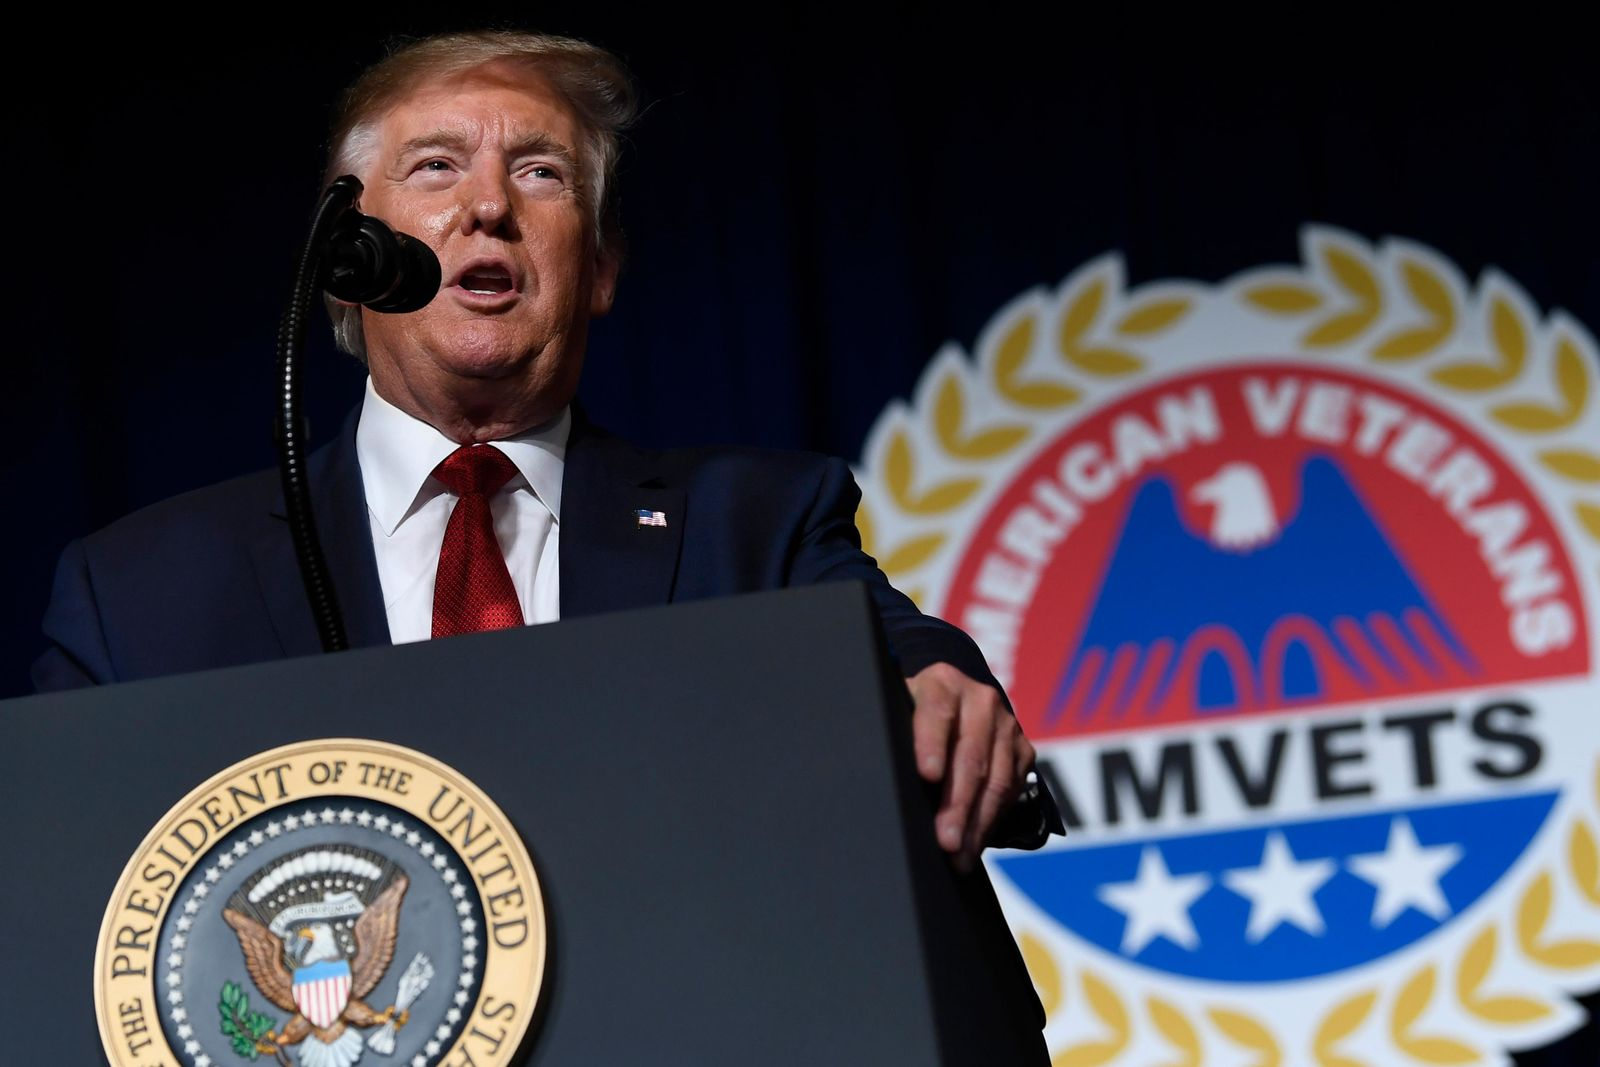 President Donald Trump speaks at the American Veterans (AMVETS) 75th National Convention in Louisville, Ky., Wednesday, Aug. 21, 2019. (AP Photo/Susan Walsh)